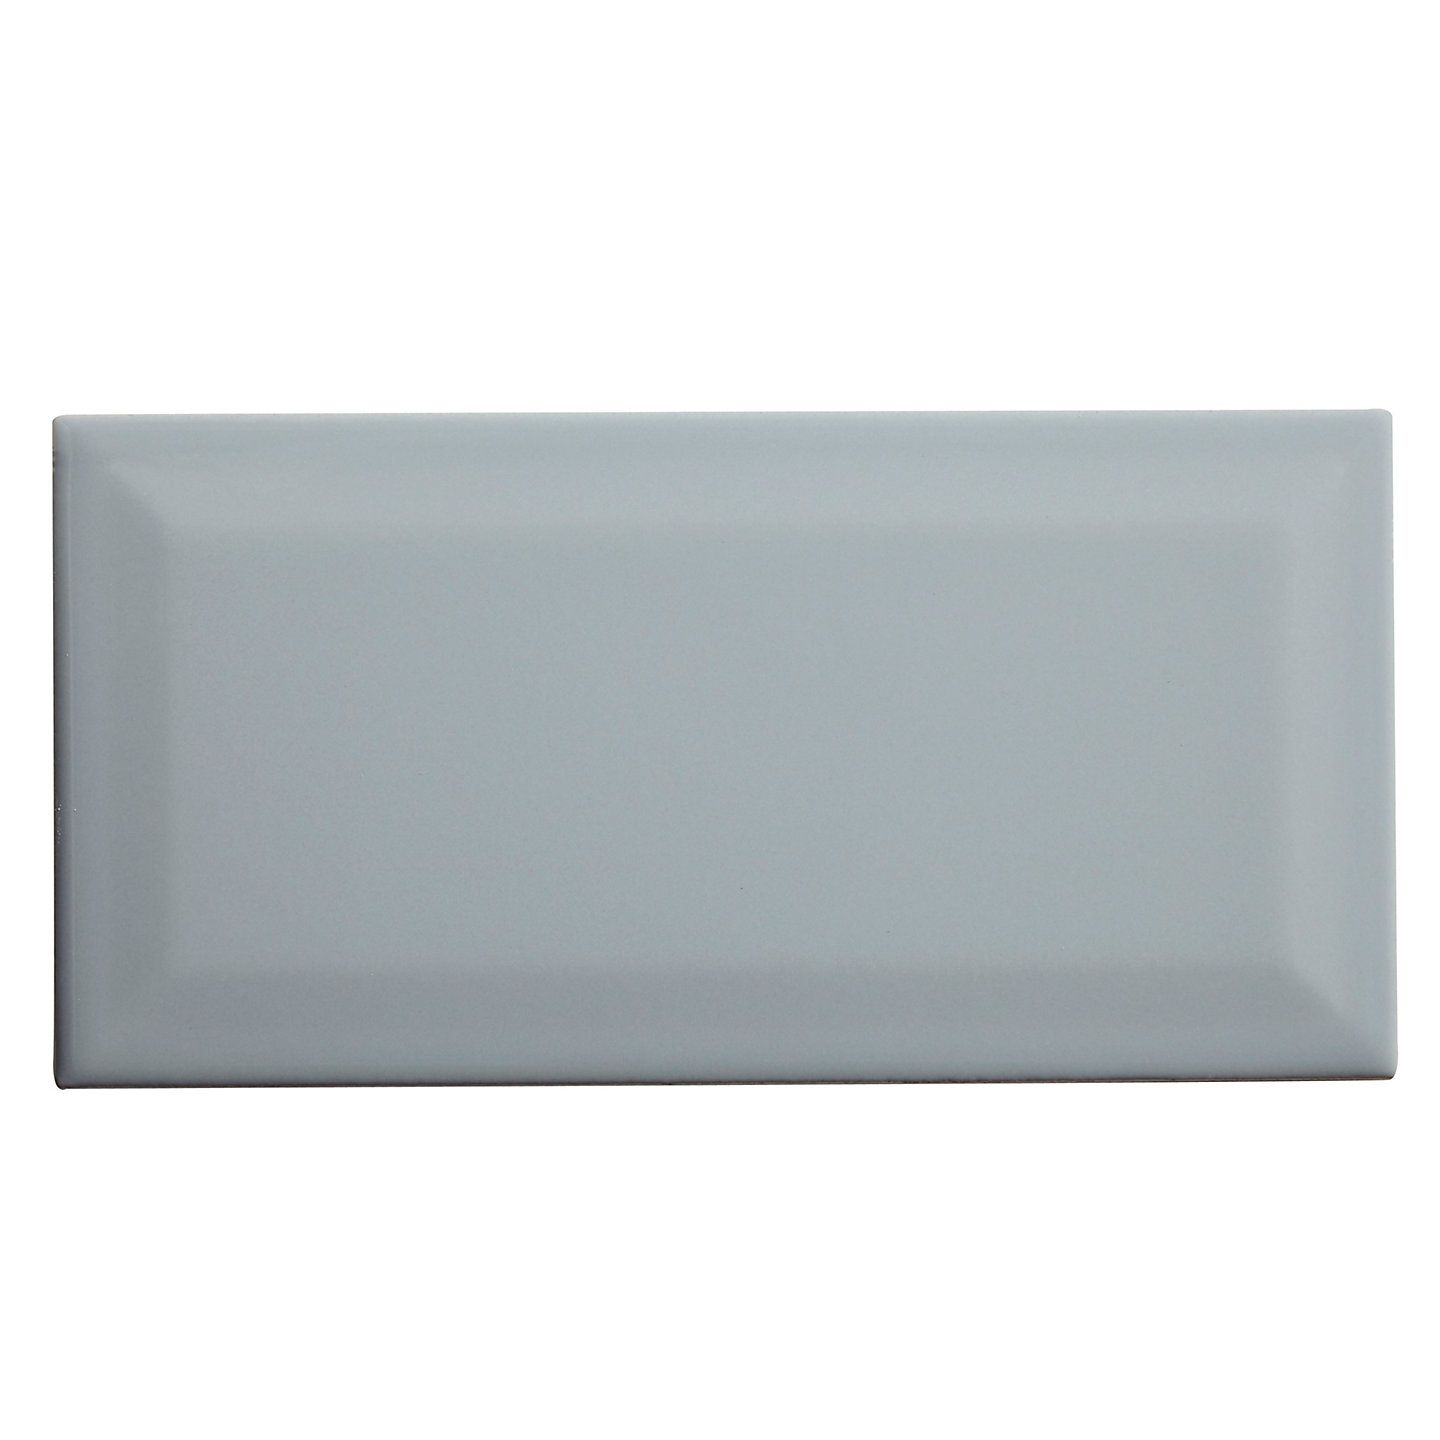 Trentie Grey Gloss Ceramic Wall Tile Pack Of 40 L 200mm